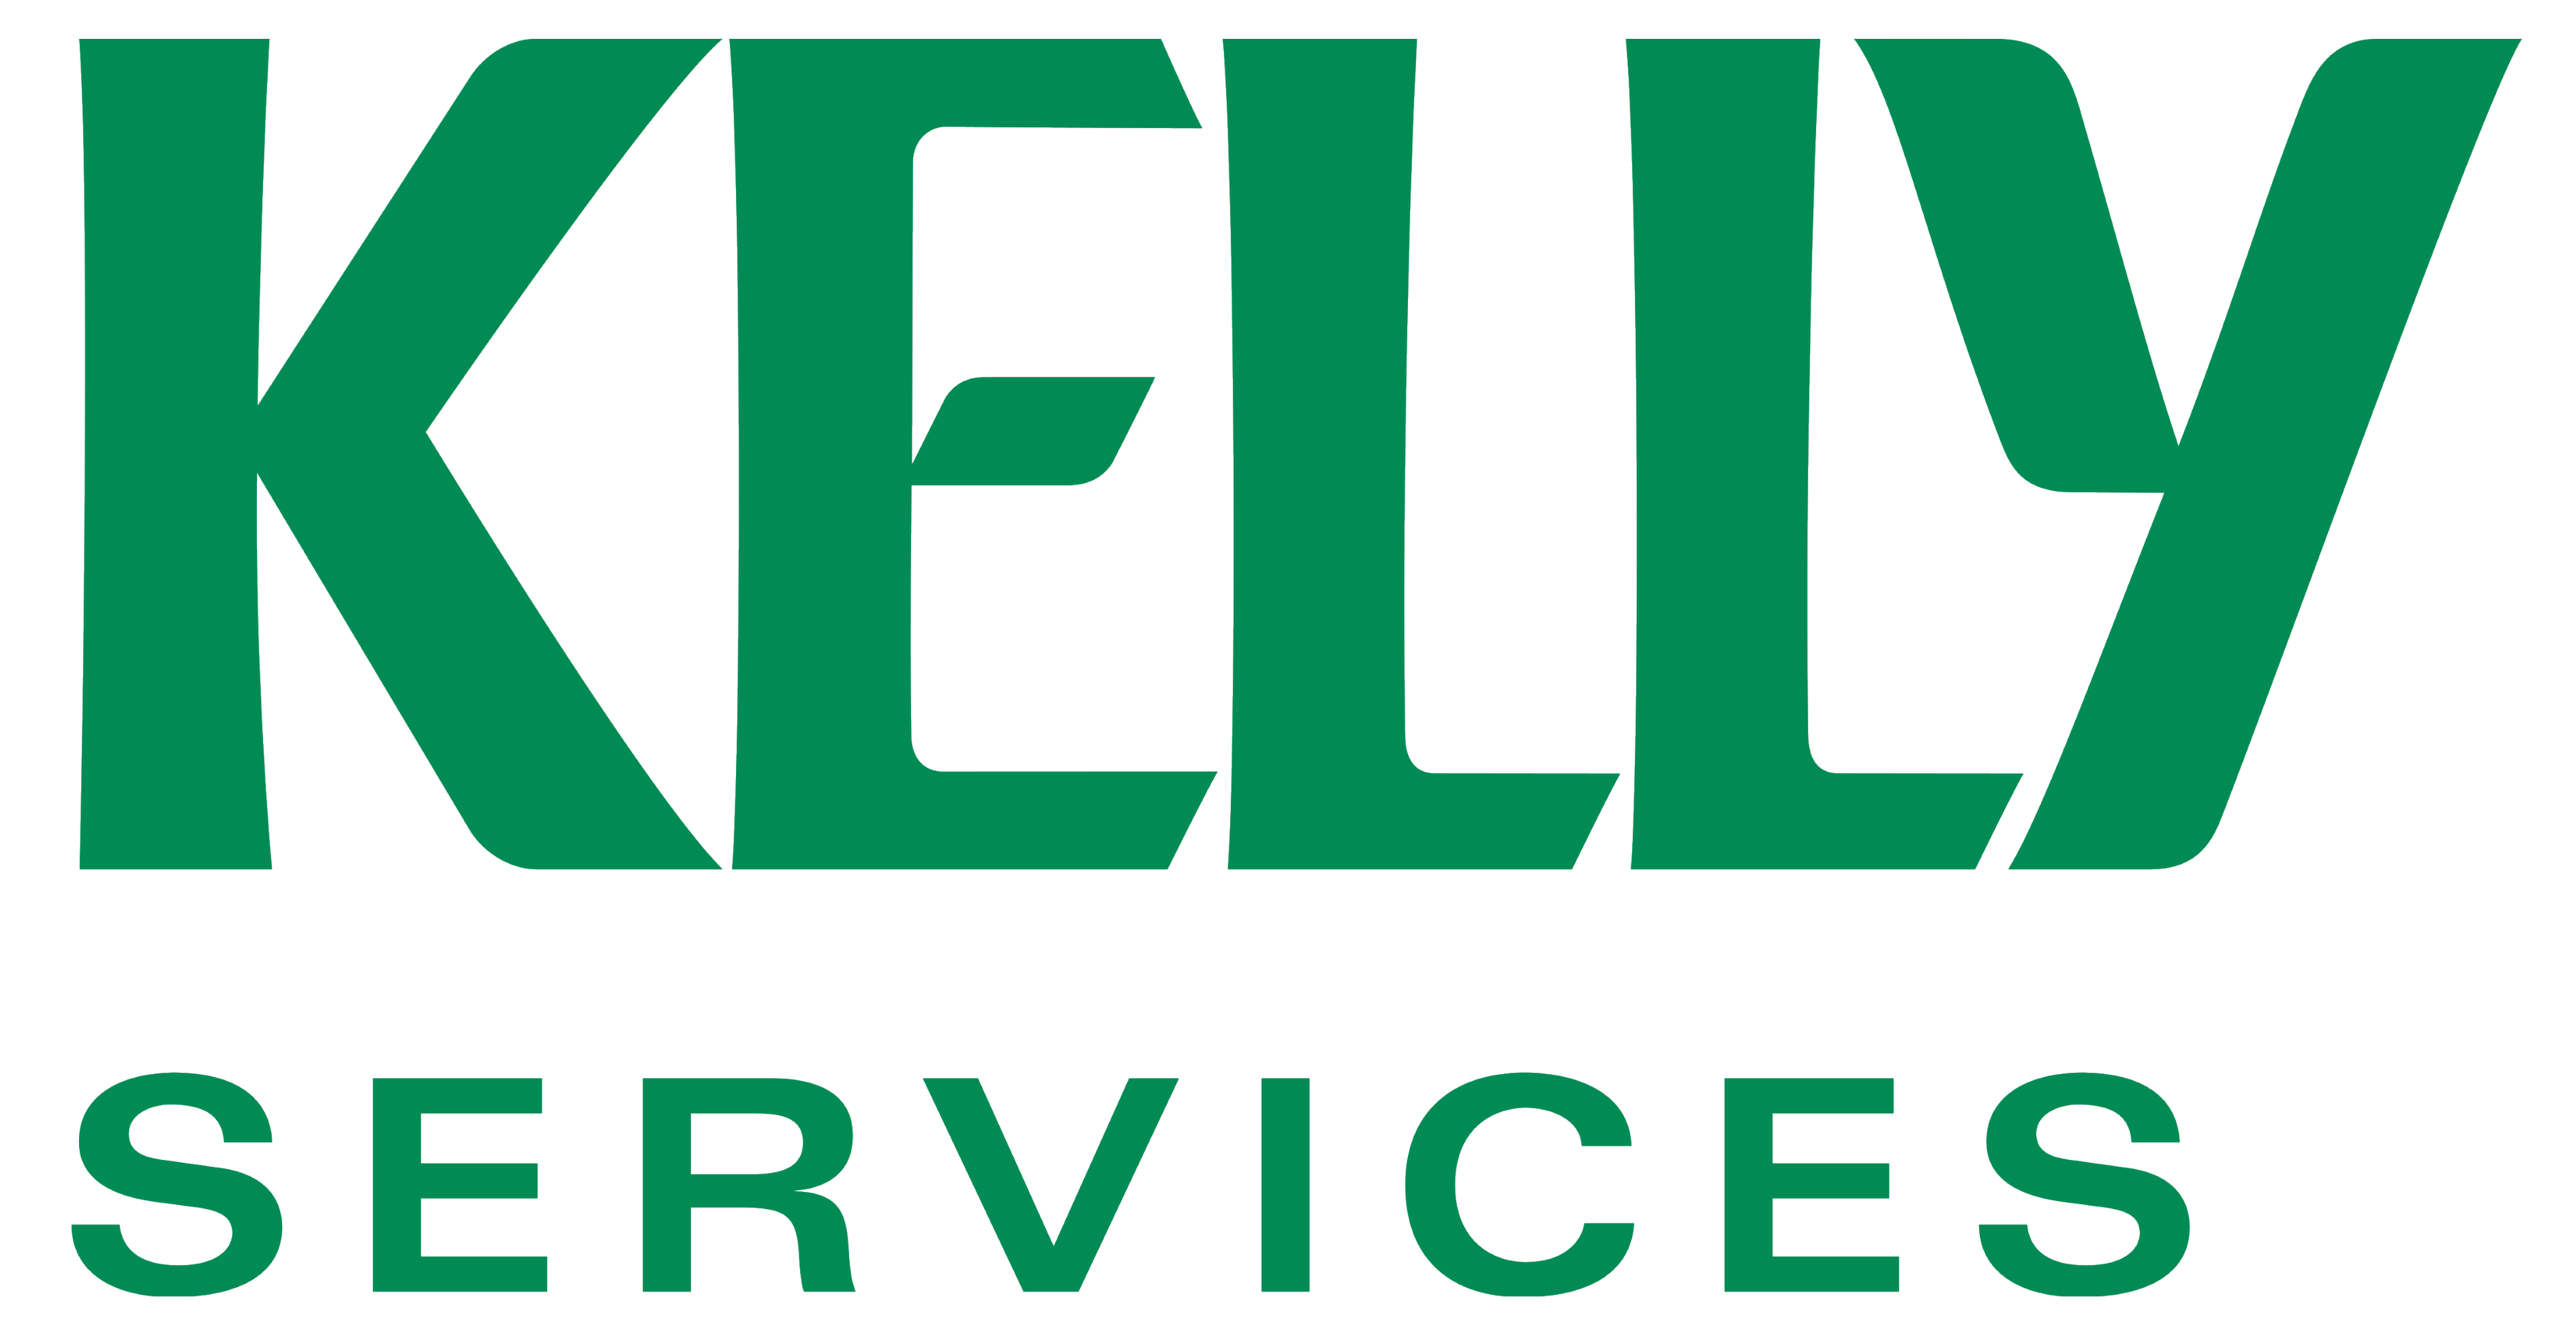 Kelly Services Food Service Worker Information